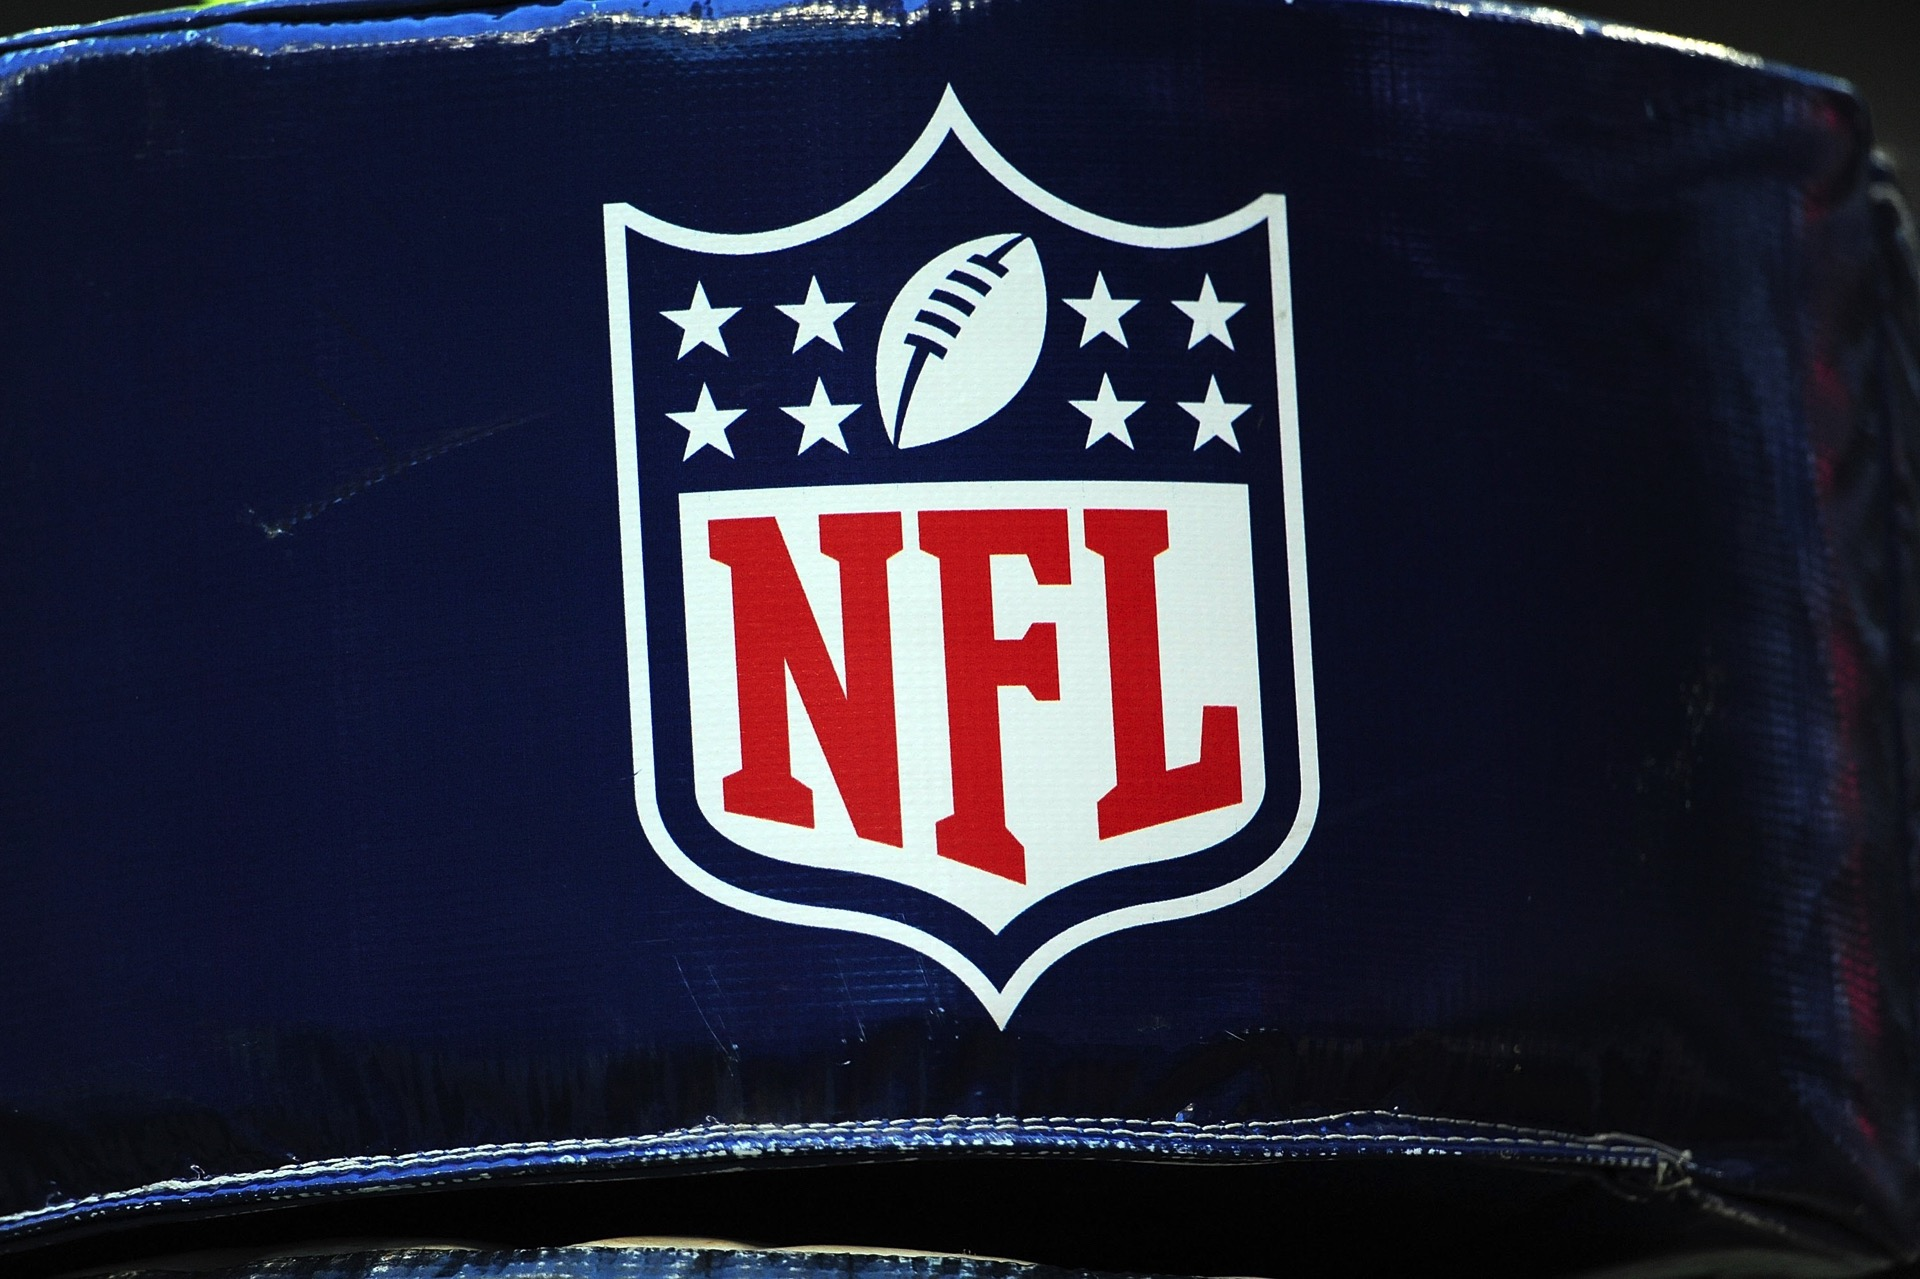 ex-nfl players in new study don't have higher suicide rate